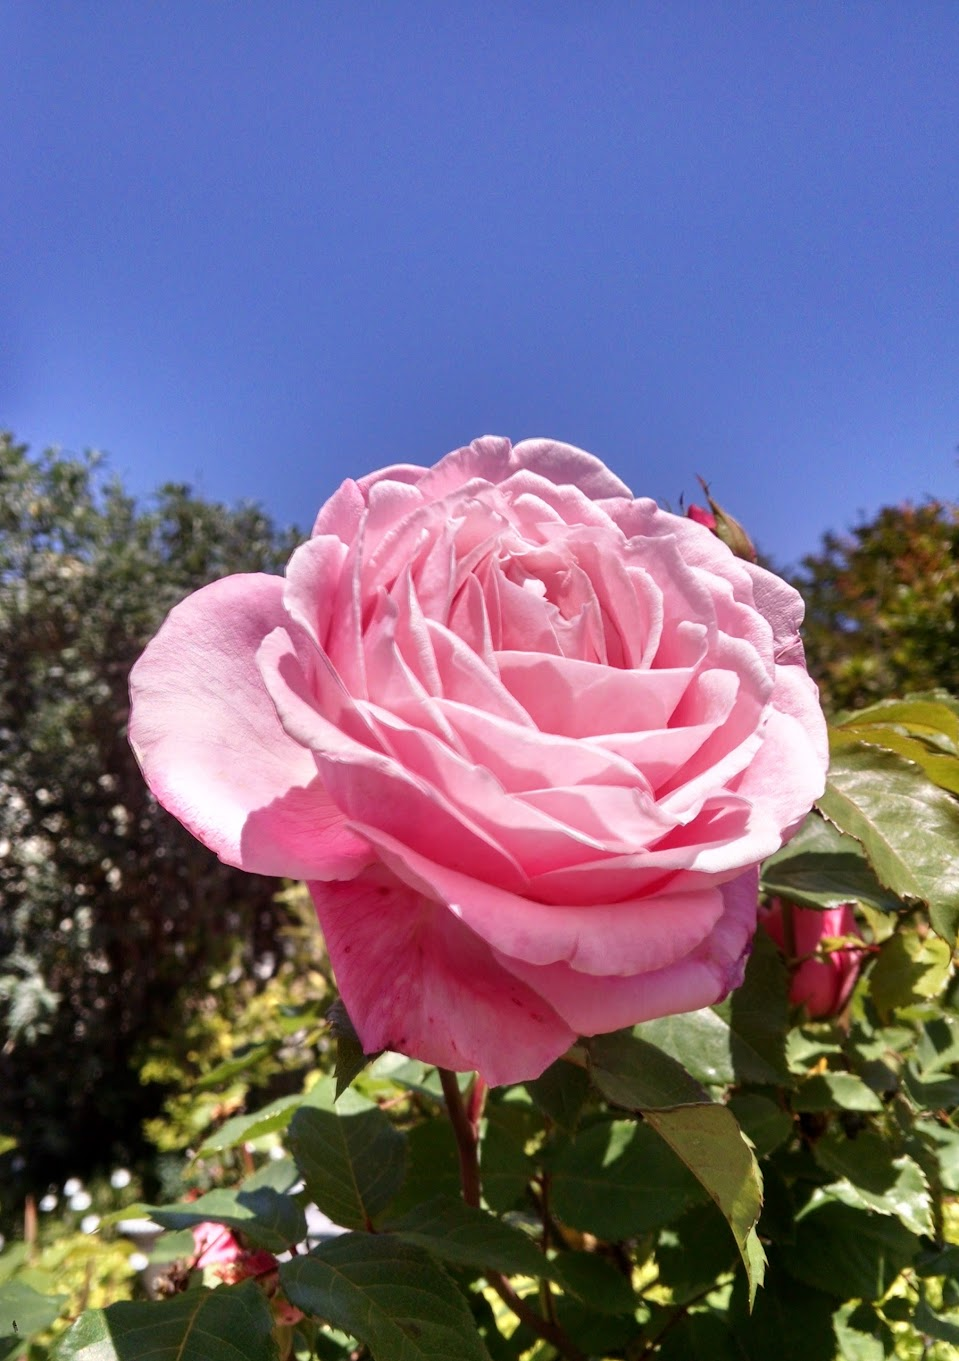 pink rose against blue sky